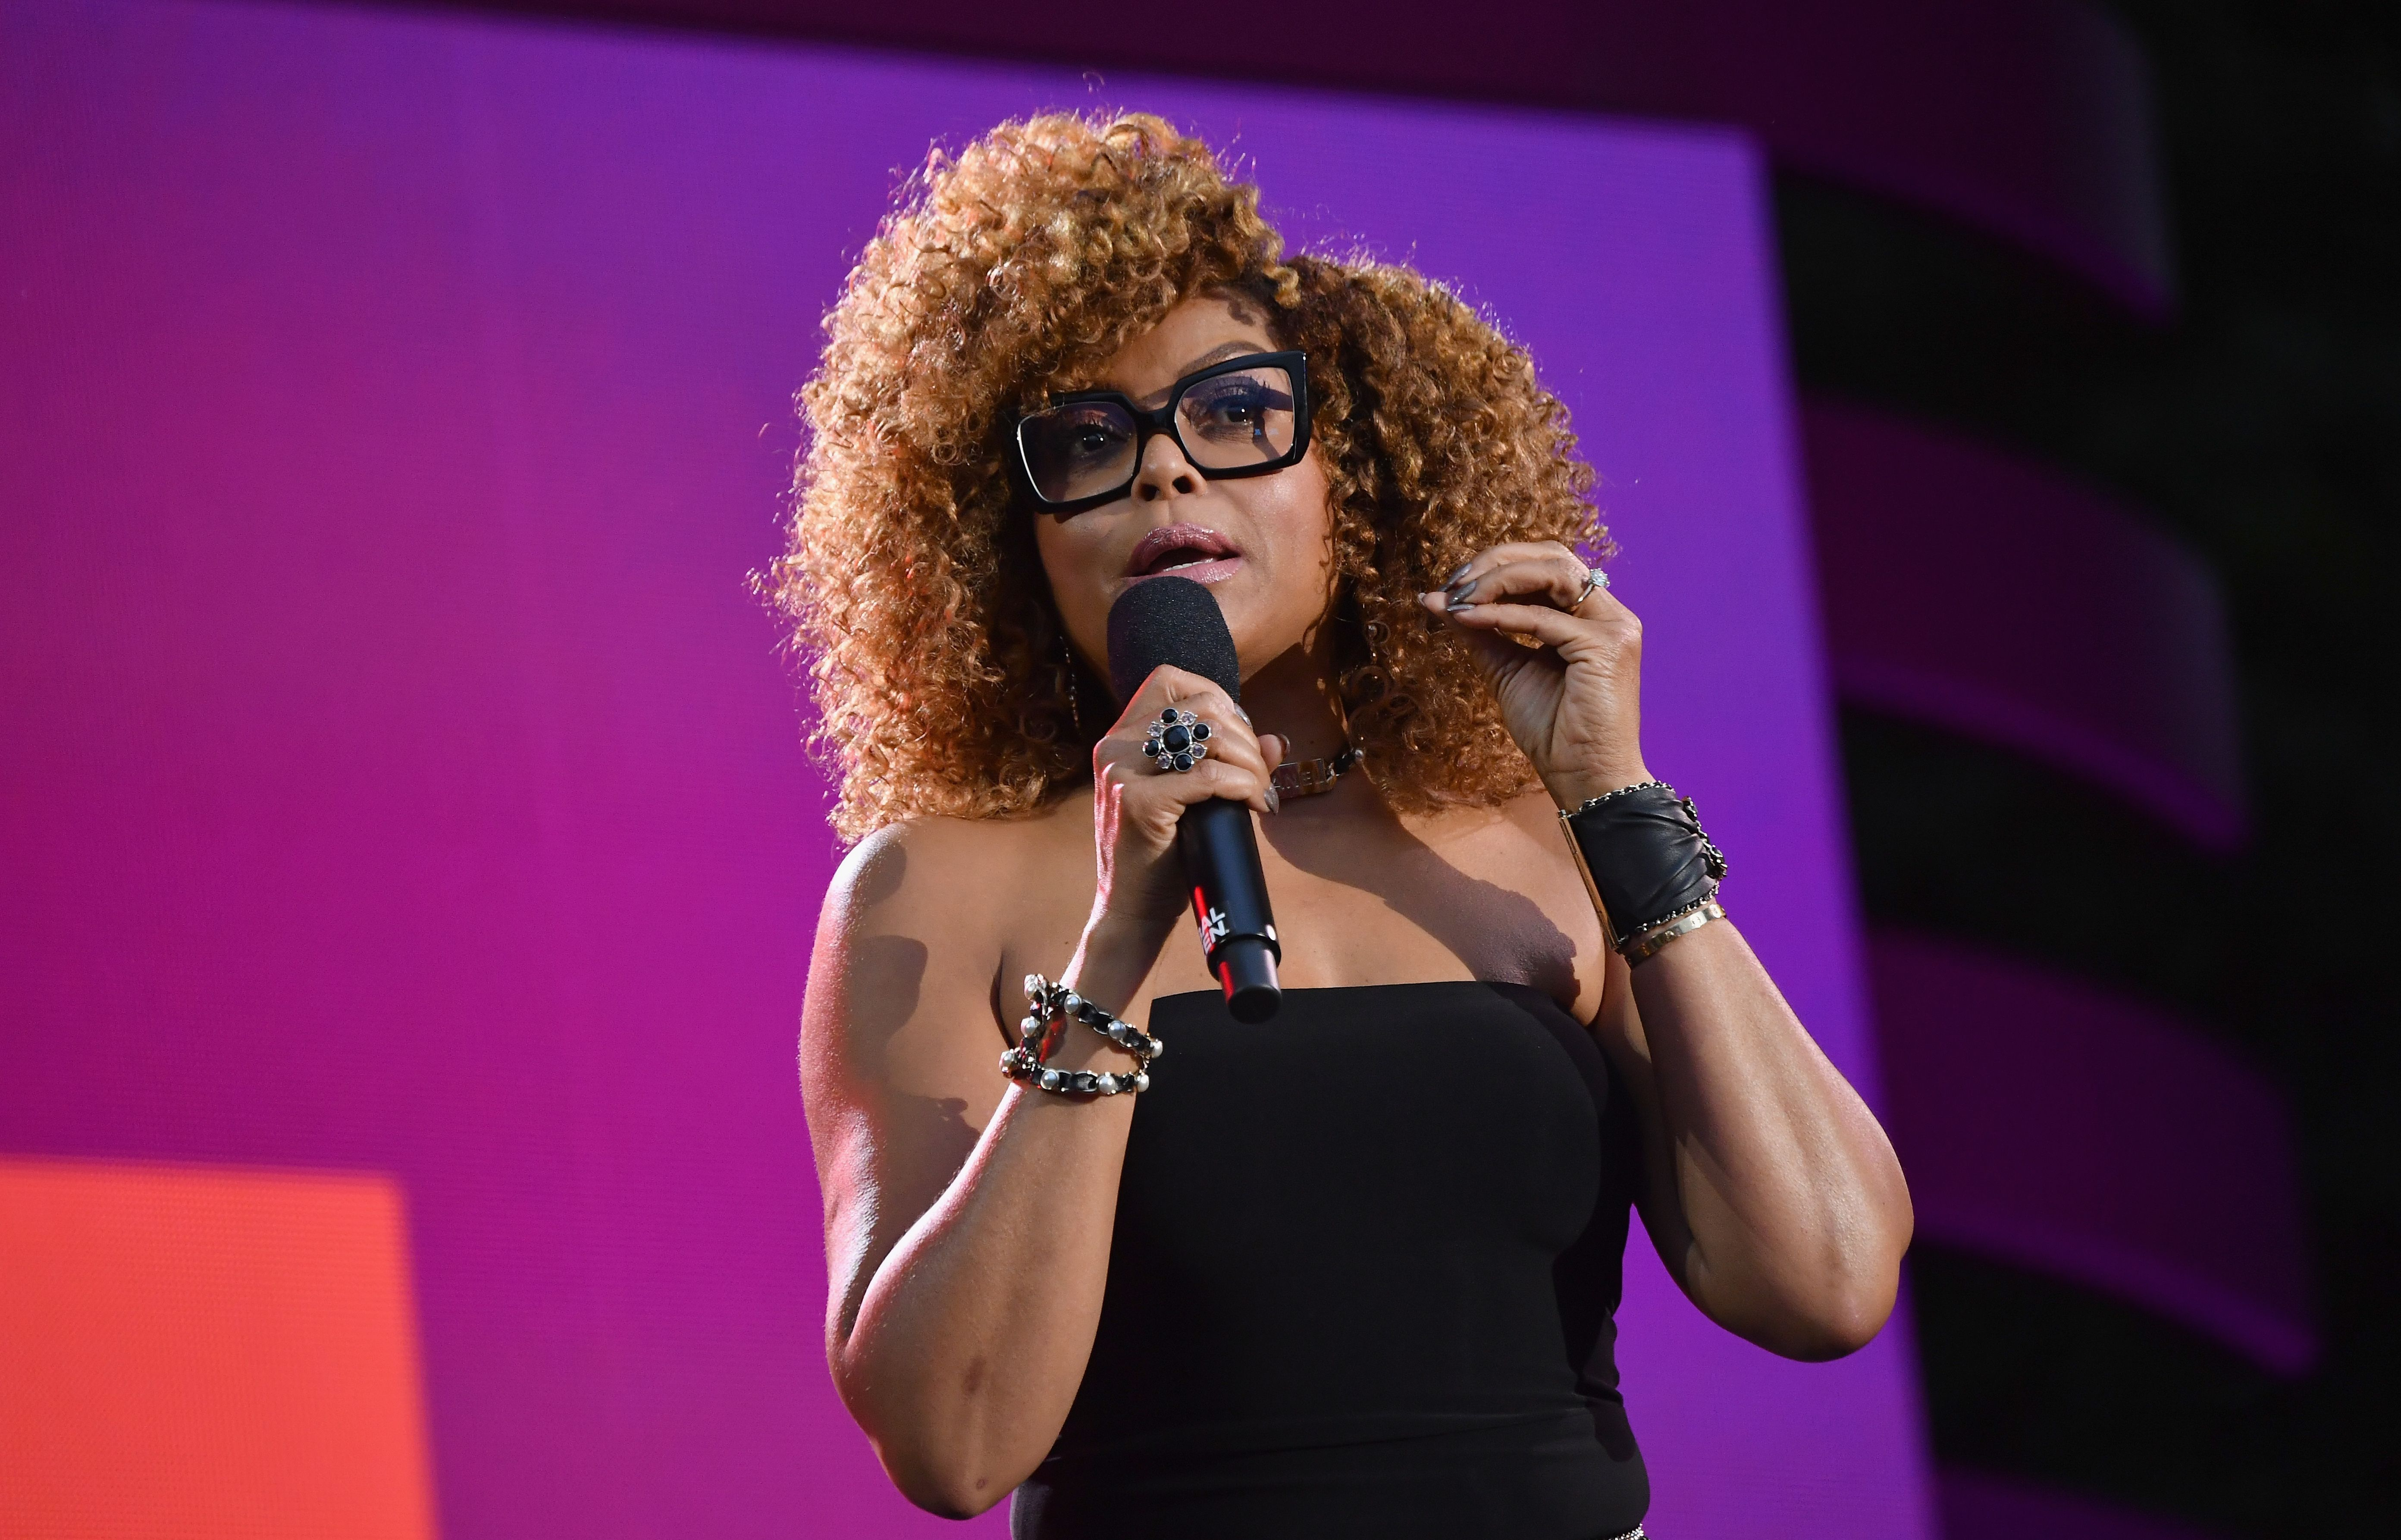 US actress Taraji P. Henson speaks onstage at the 2019 Global Citizen Festival: Power The Movement in Central Park in New York on September 28, 2019. (Photo by Angela Weiss / AFP)        (Photo credit should read ANGELA WEISS/AFP/Getty Images)